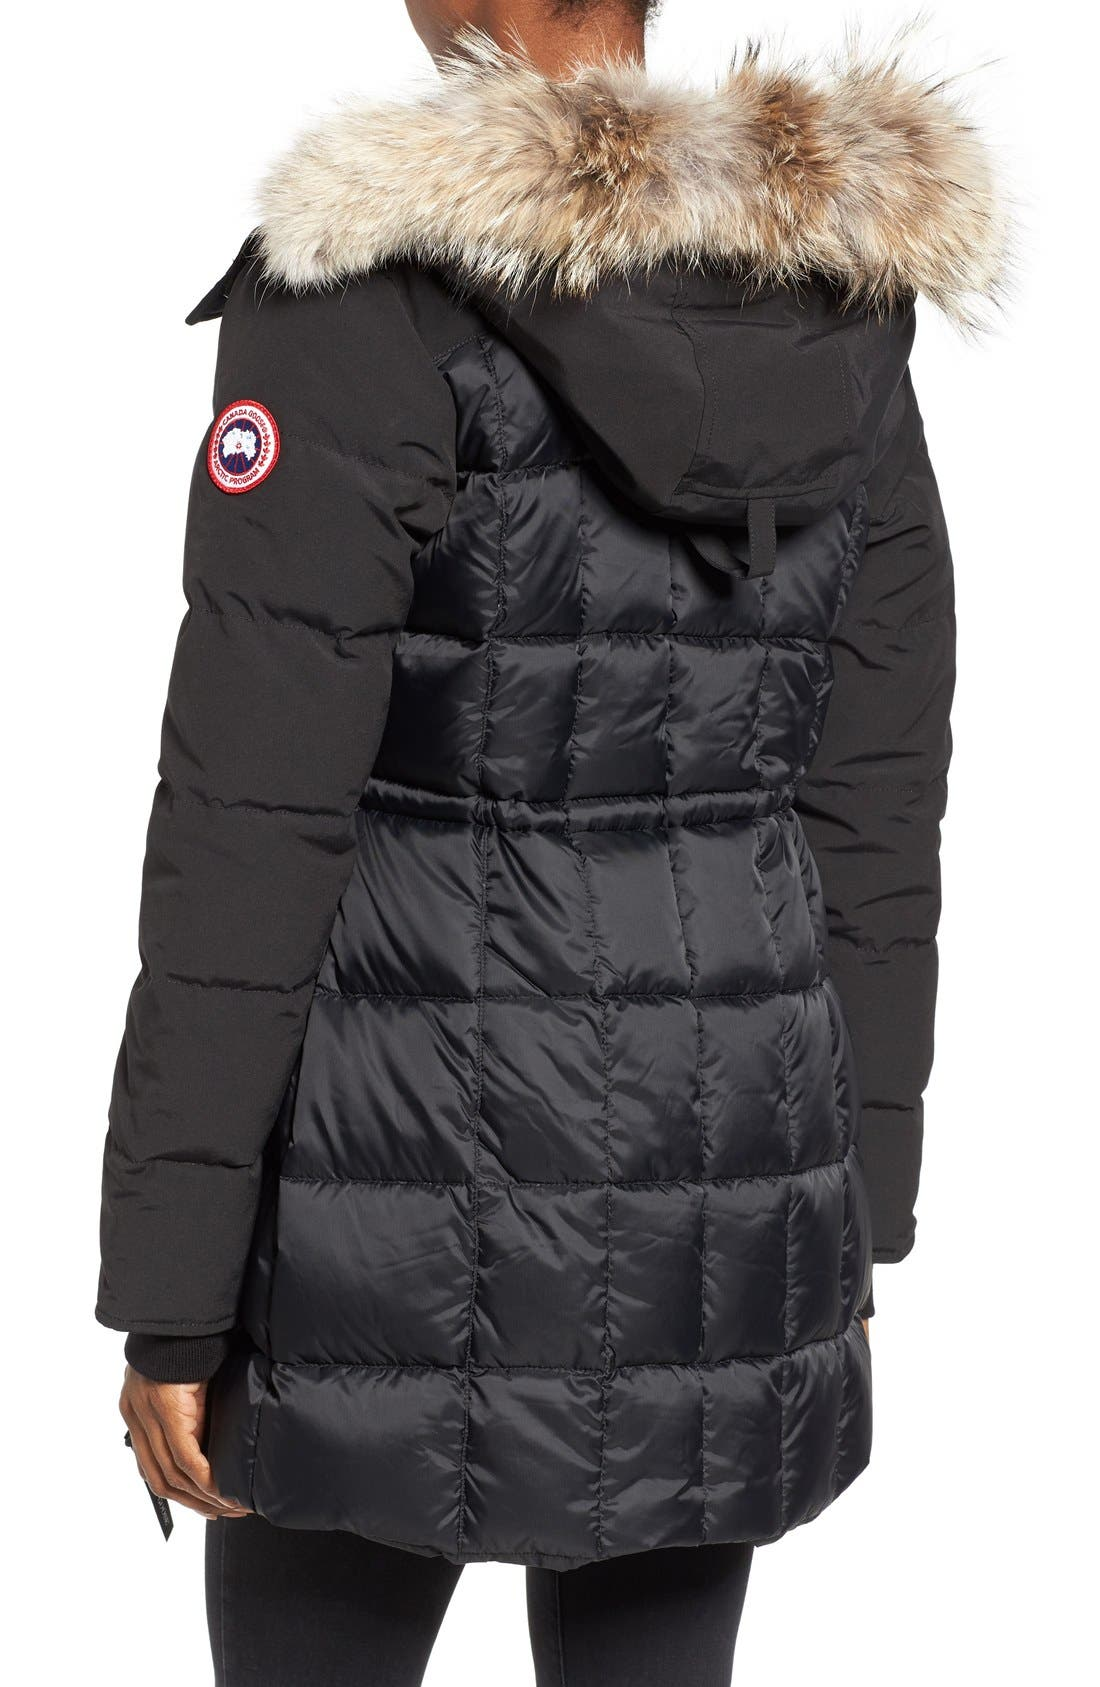 CANADA GOOSE, Beechwood Down Parka with Genuine Coyote Fur Trim, Alternate thumbnail 4, color, BLACK